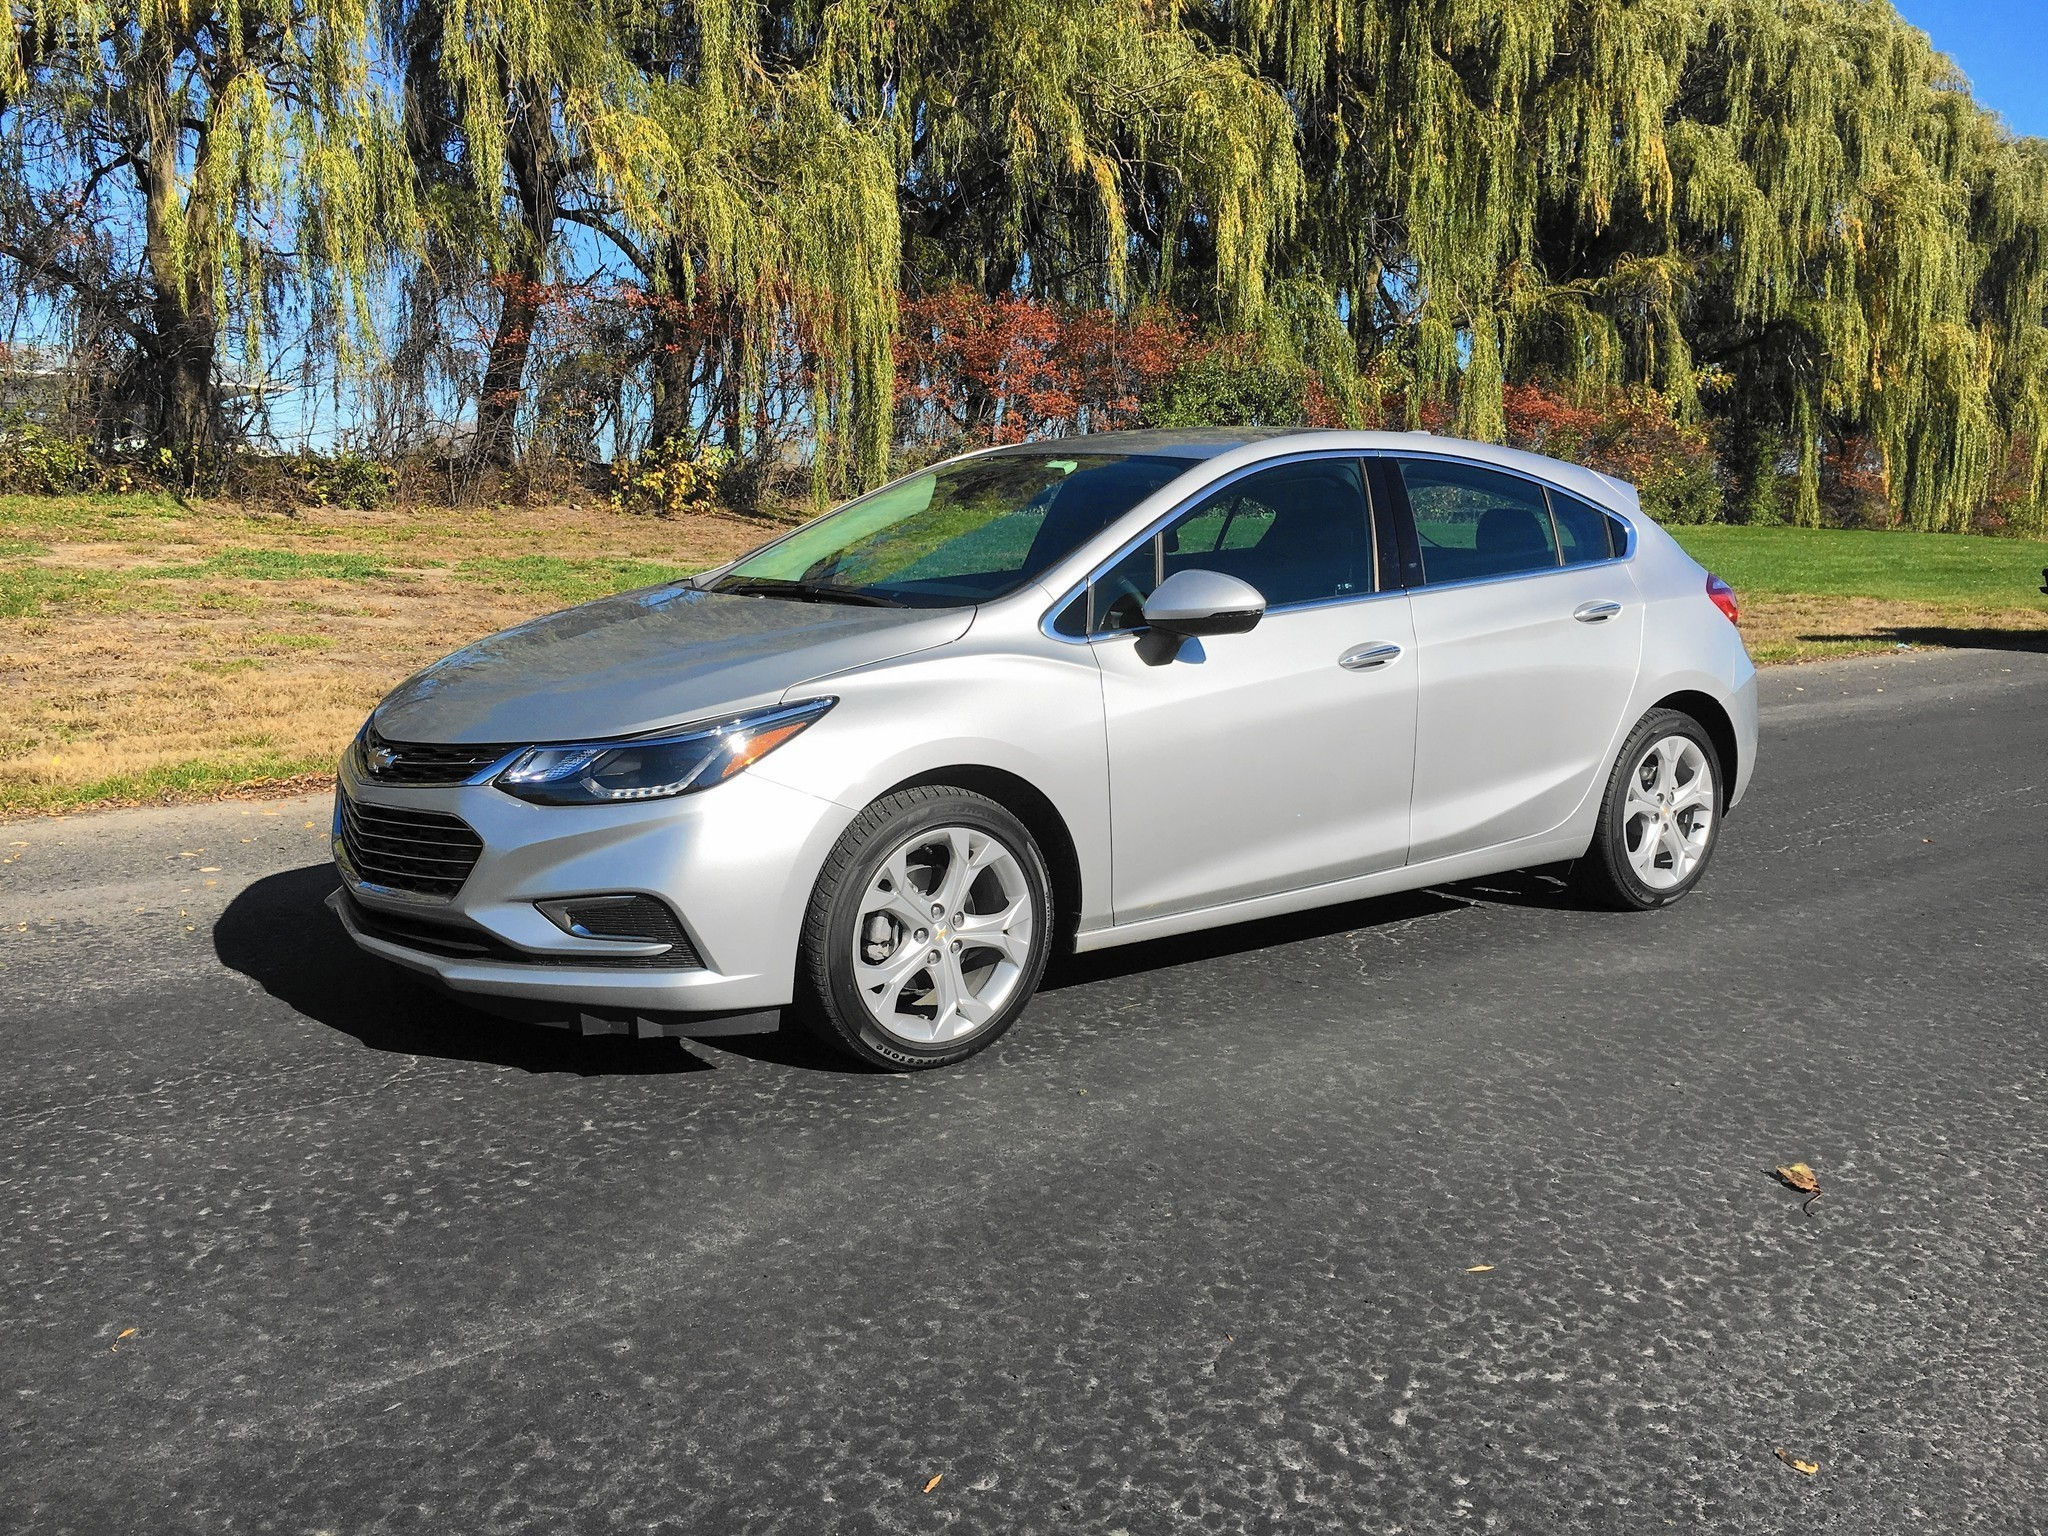 2017 Chevrolet Cruze Hatch Opens Up Alternatives To Compacts And Crossovers